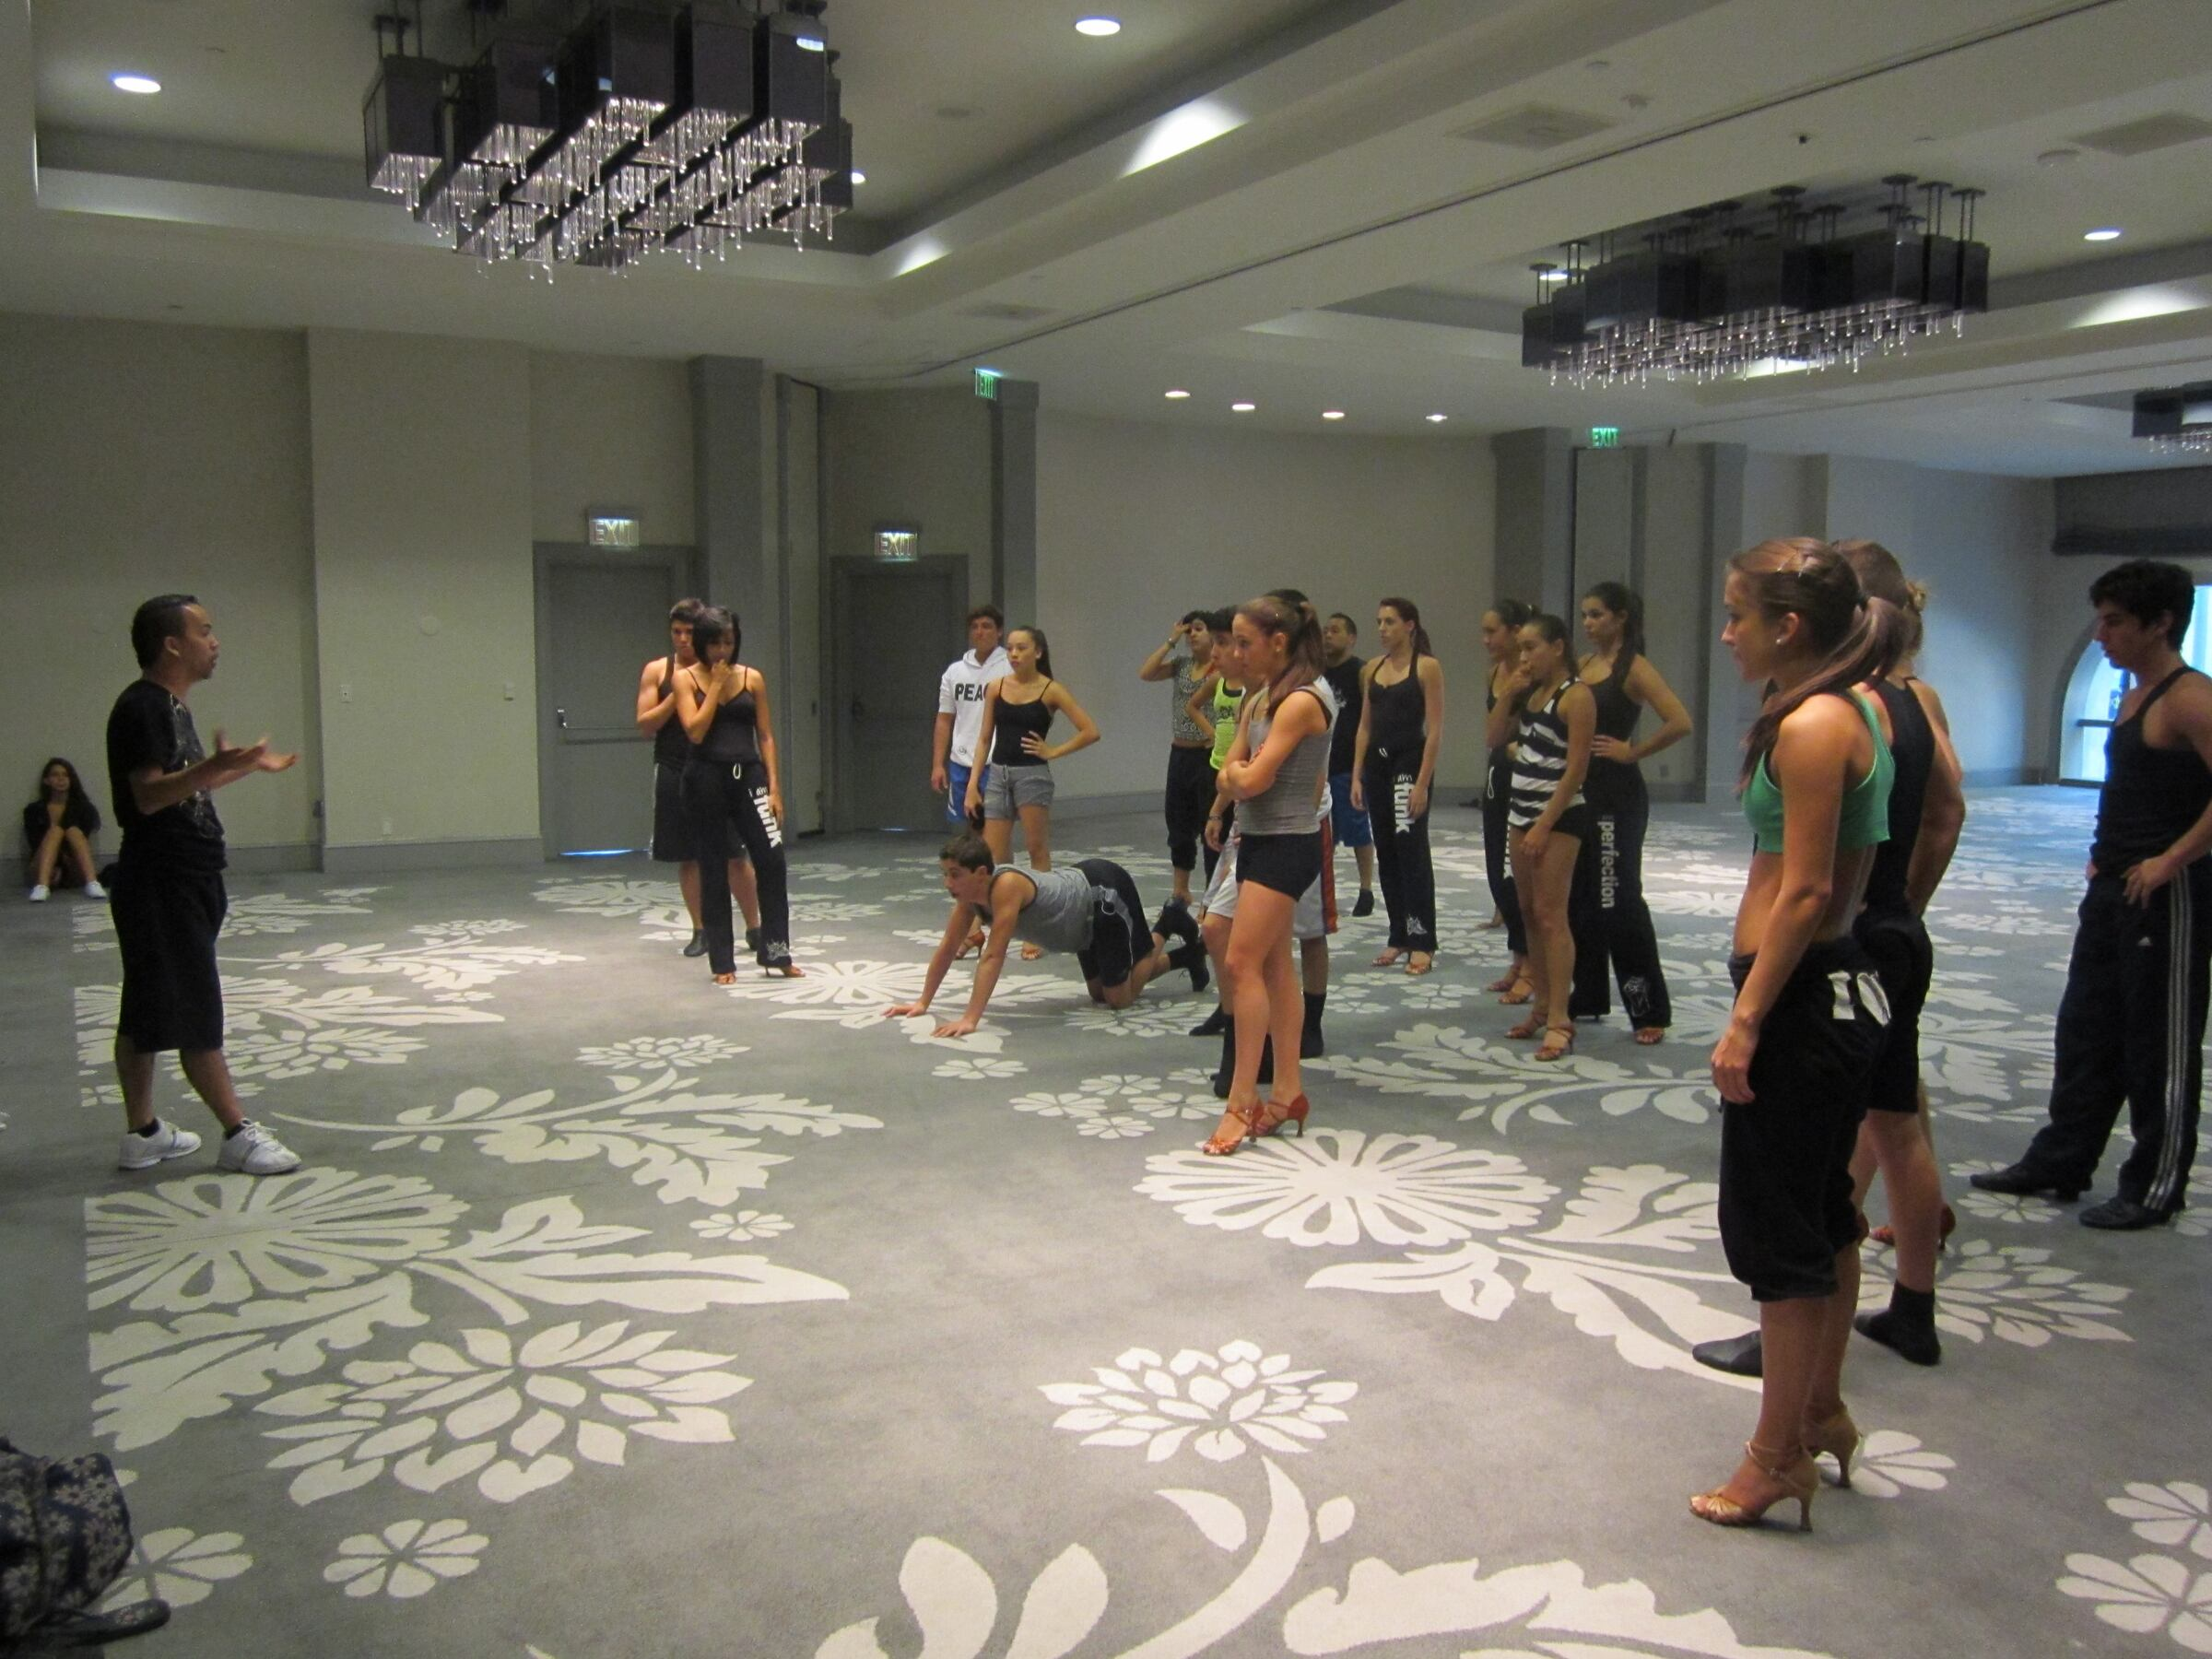 Manny giving us a good pep talk before our training/rehearsal